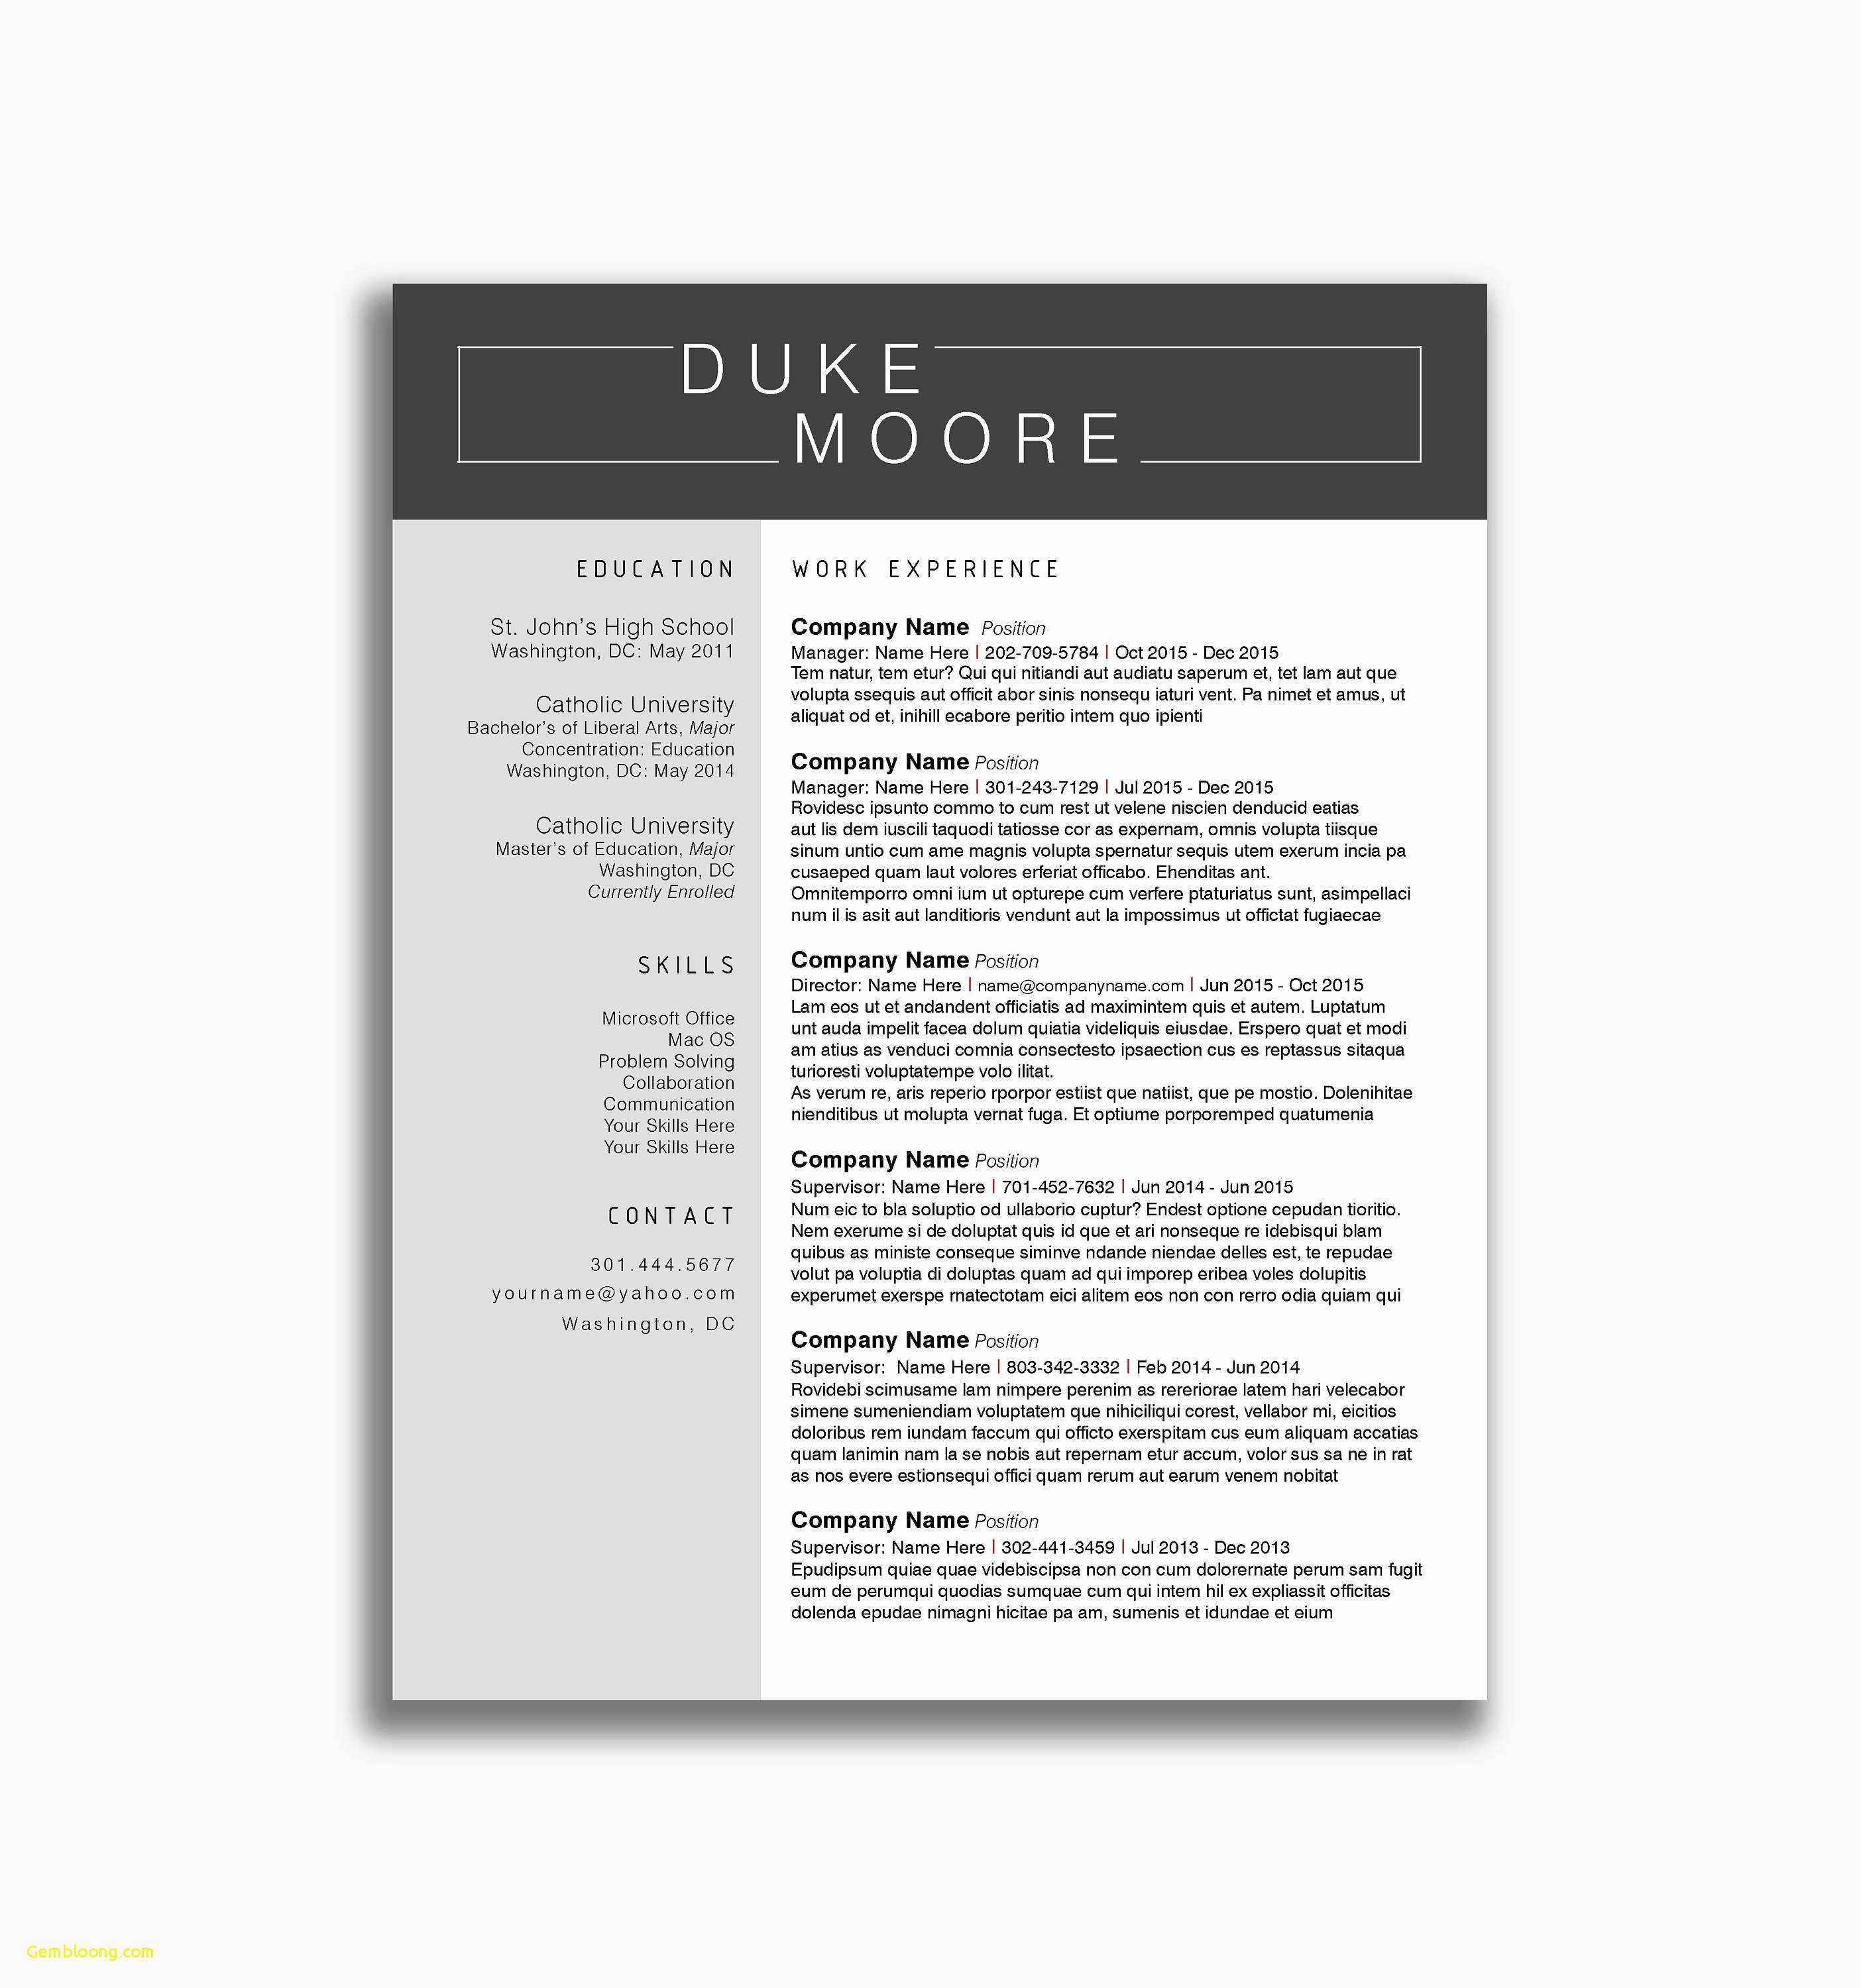 Resume Cover Letter Template Free - Free Resume and Cover Letter Template Valid Cover Letter for Resume